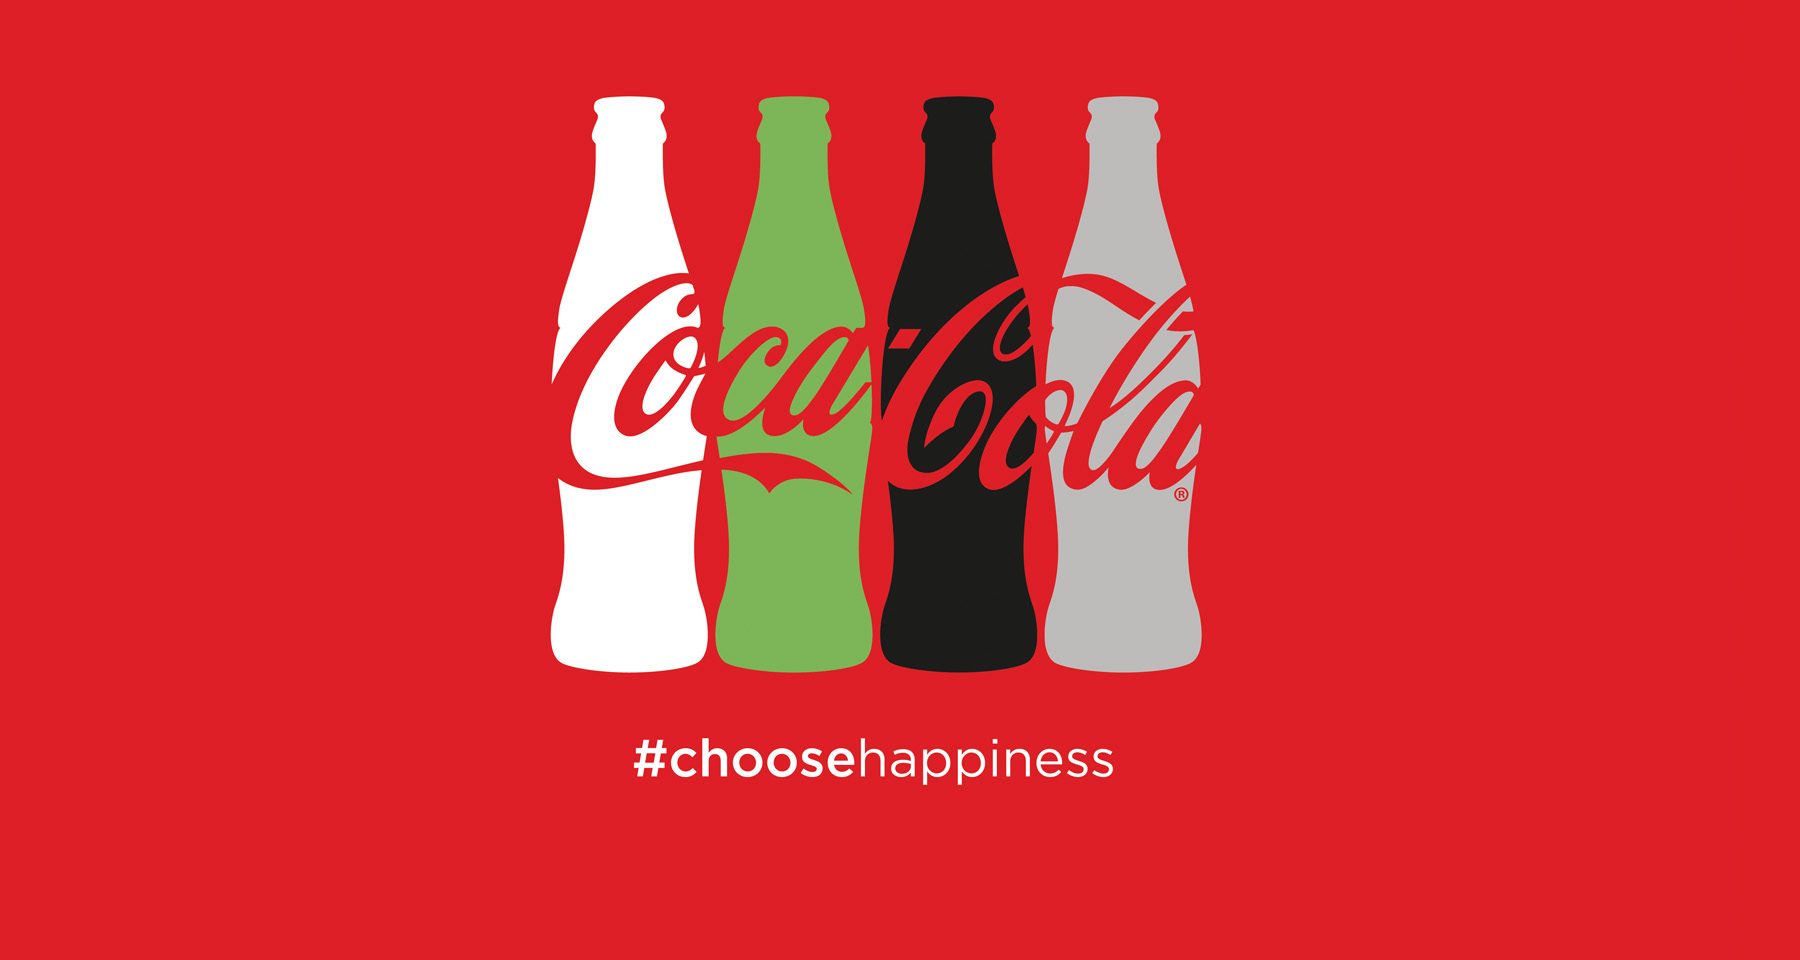 Mediahuis Coca-Cola campaign embodies power of native advertising